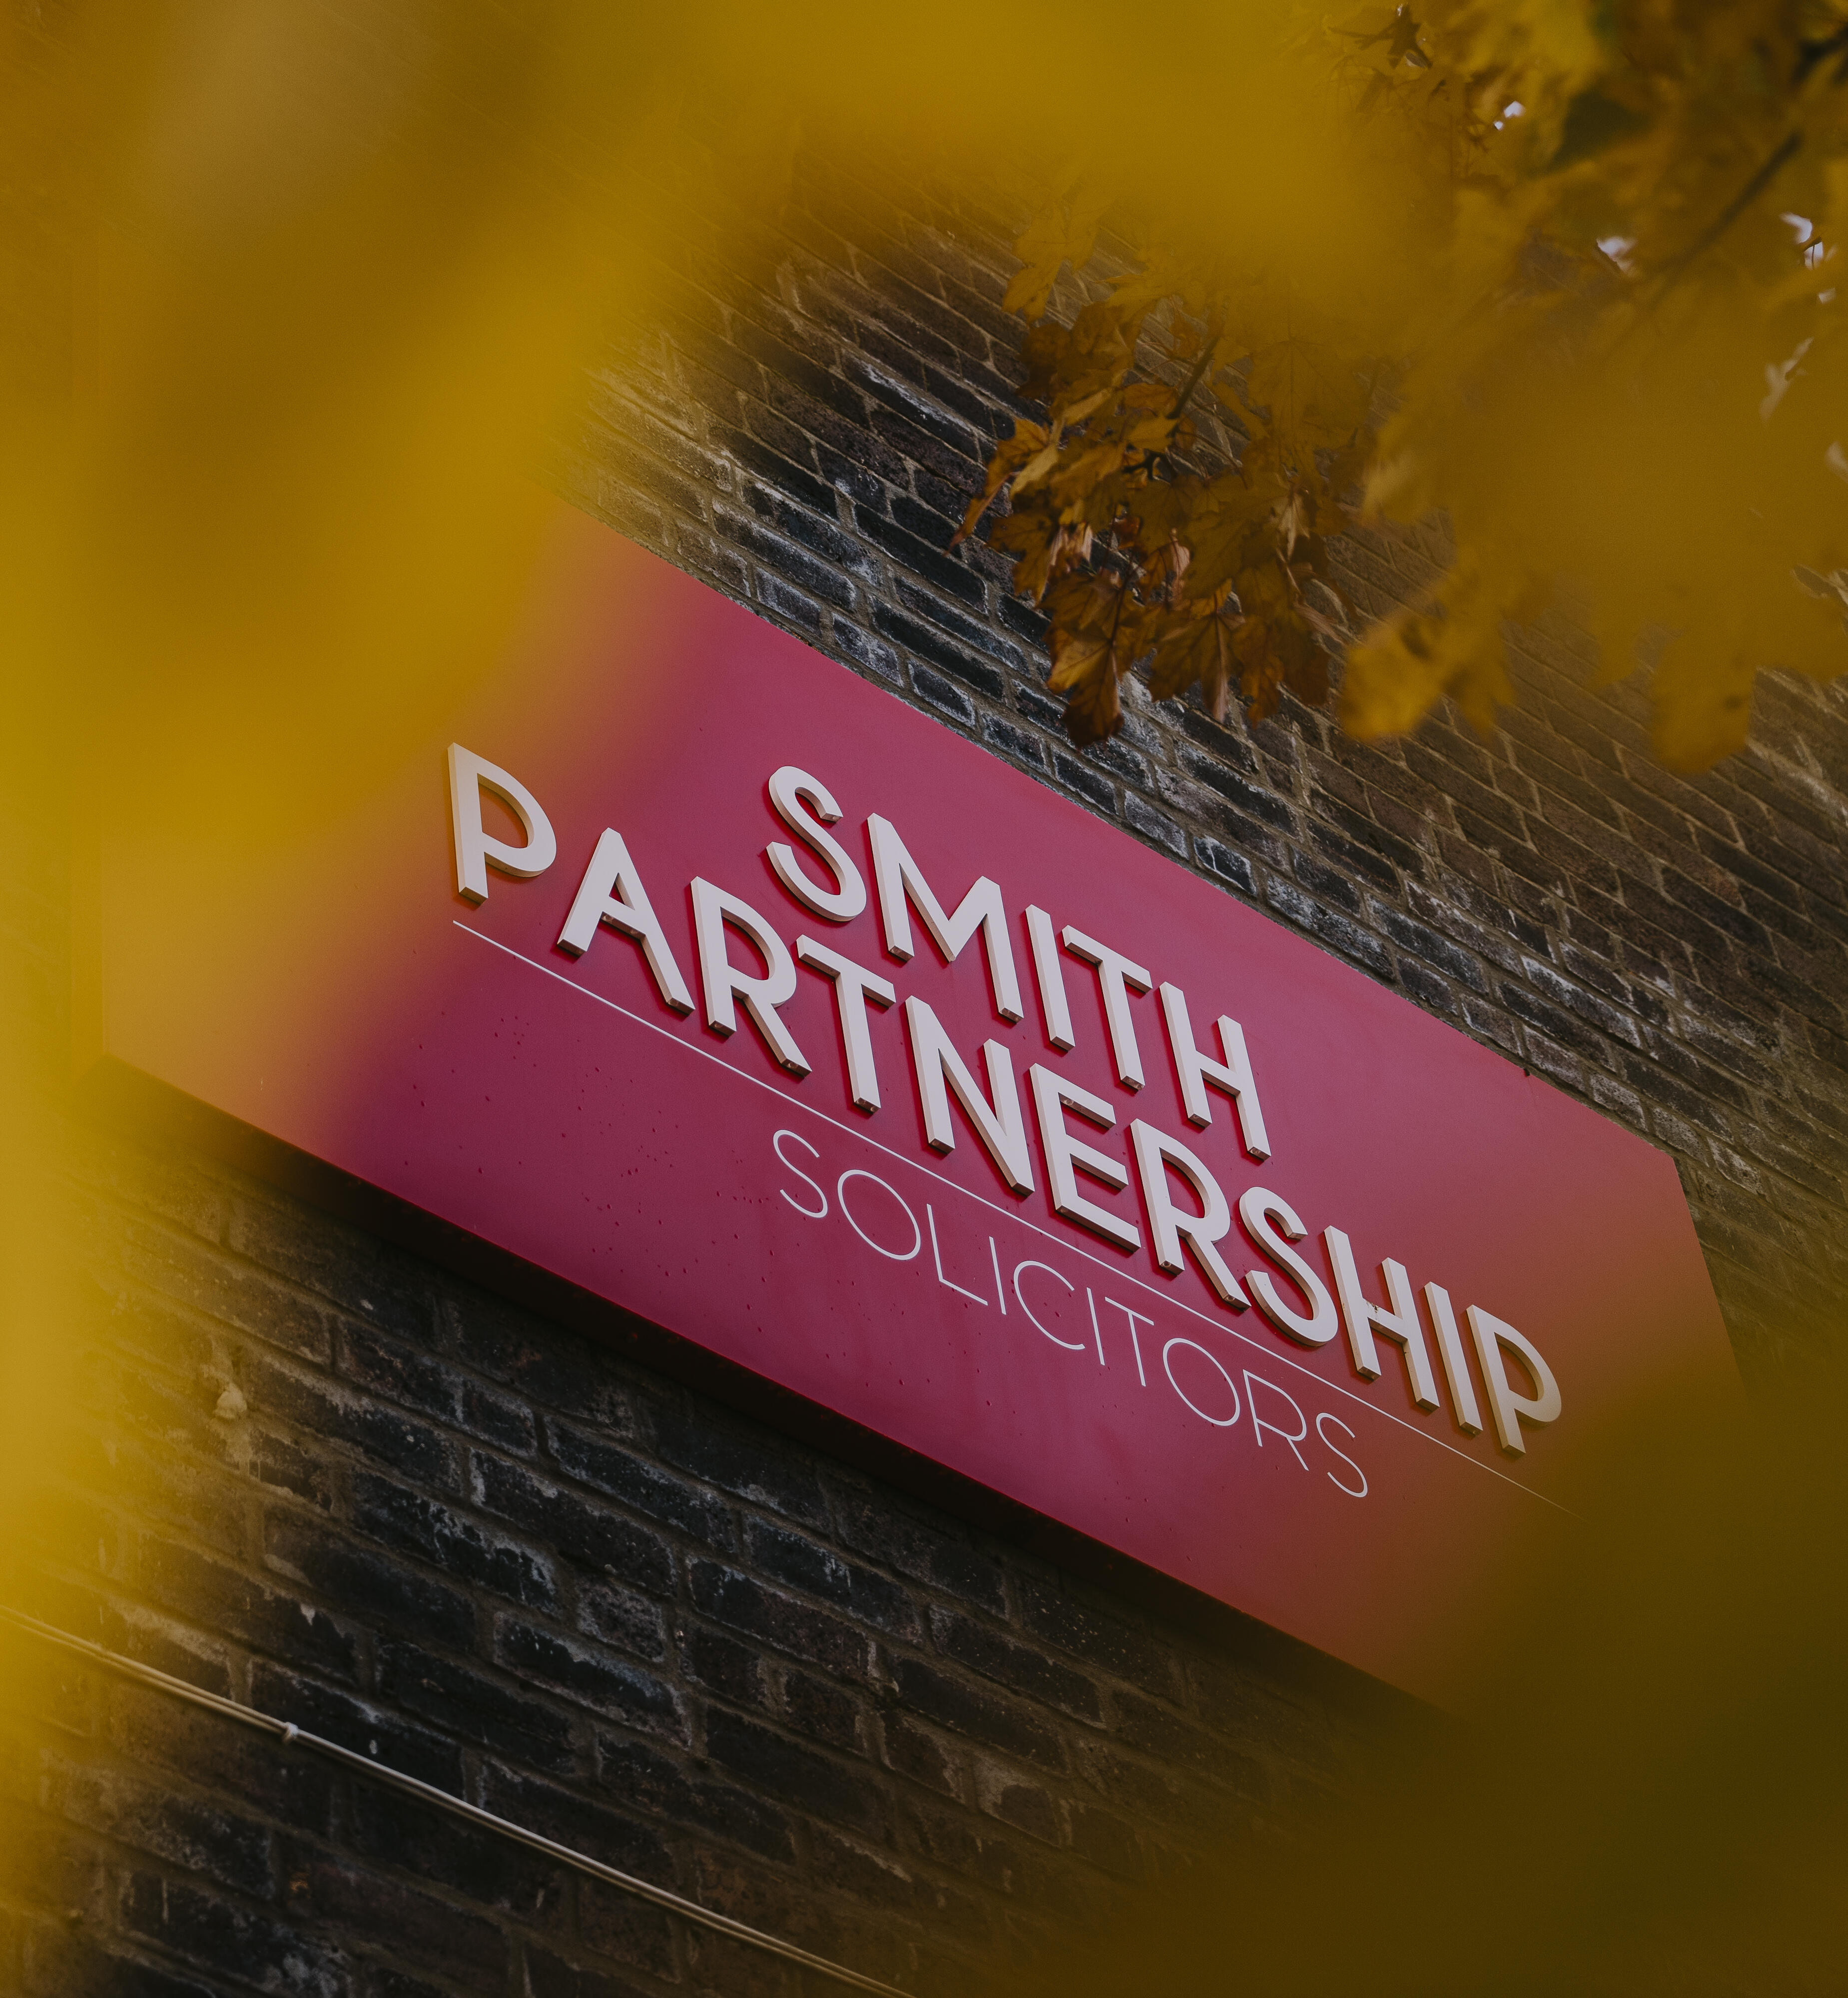 Main contact page, SMITH PARTNERSHIP SOLICITORS